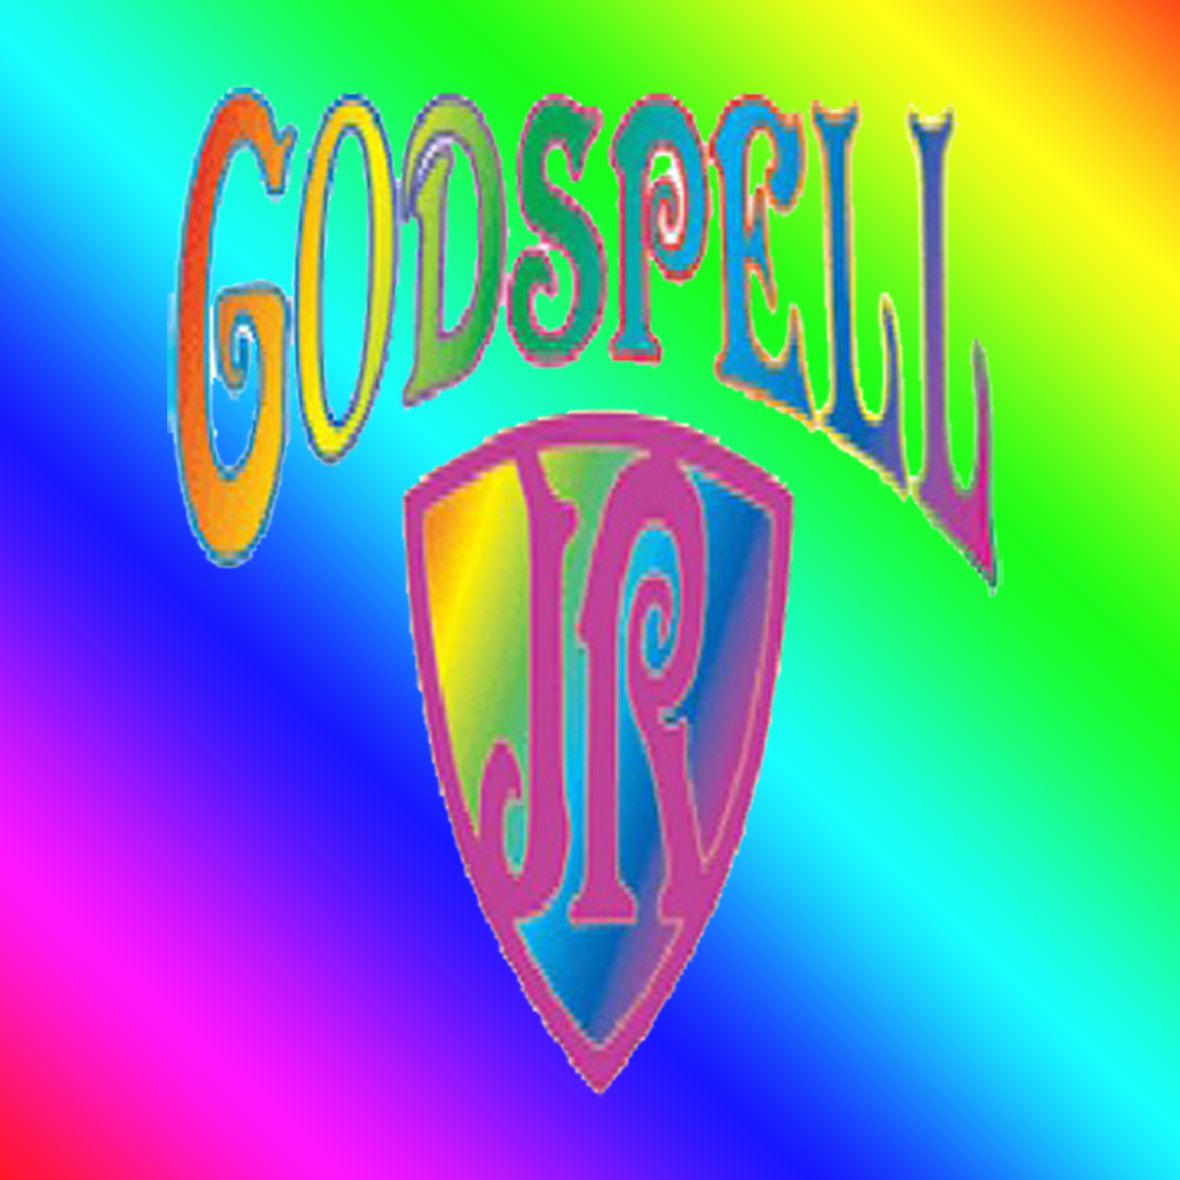 CCC performance of the Godspell